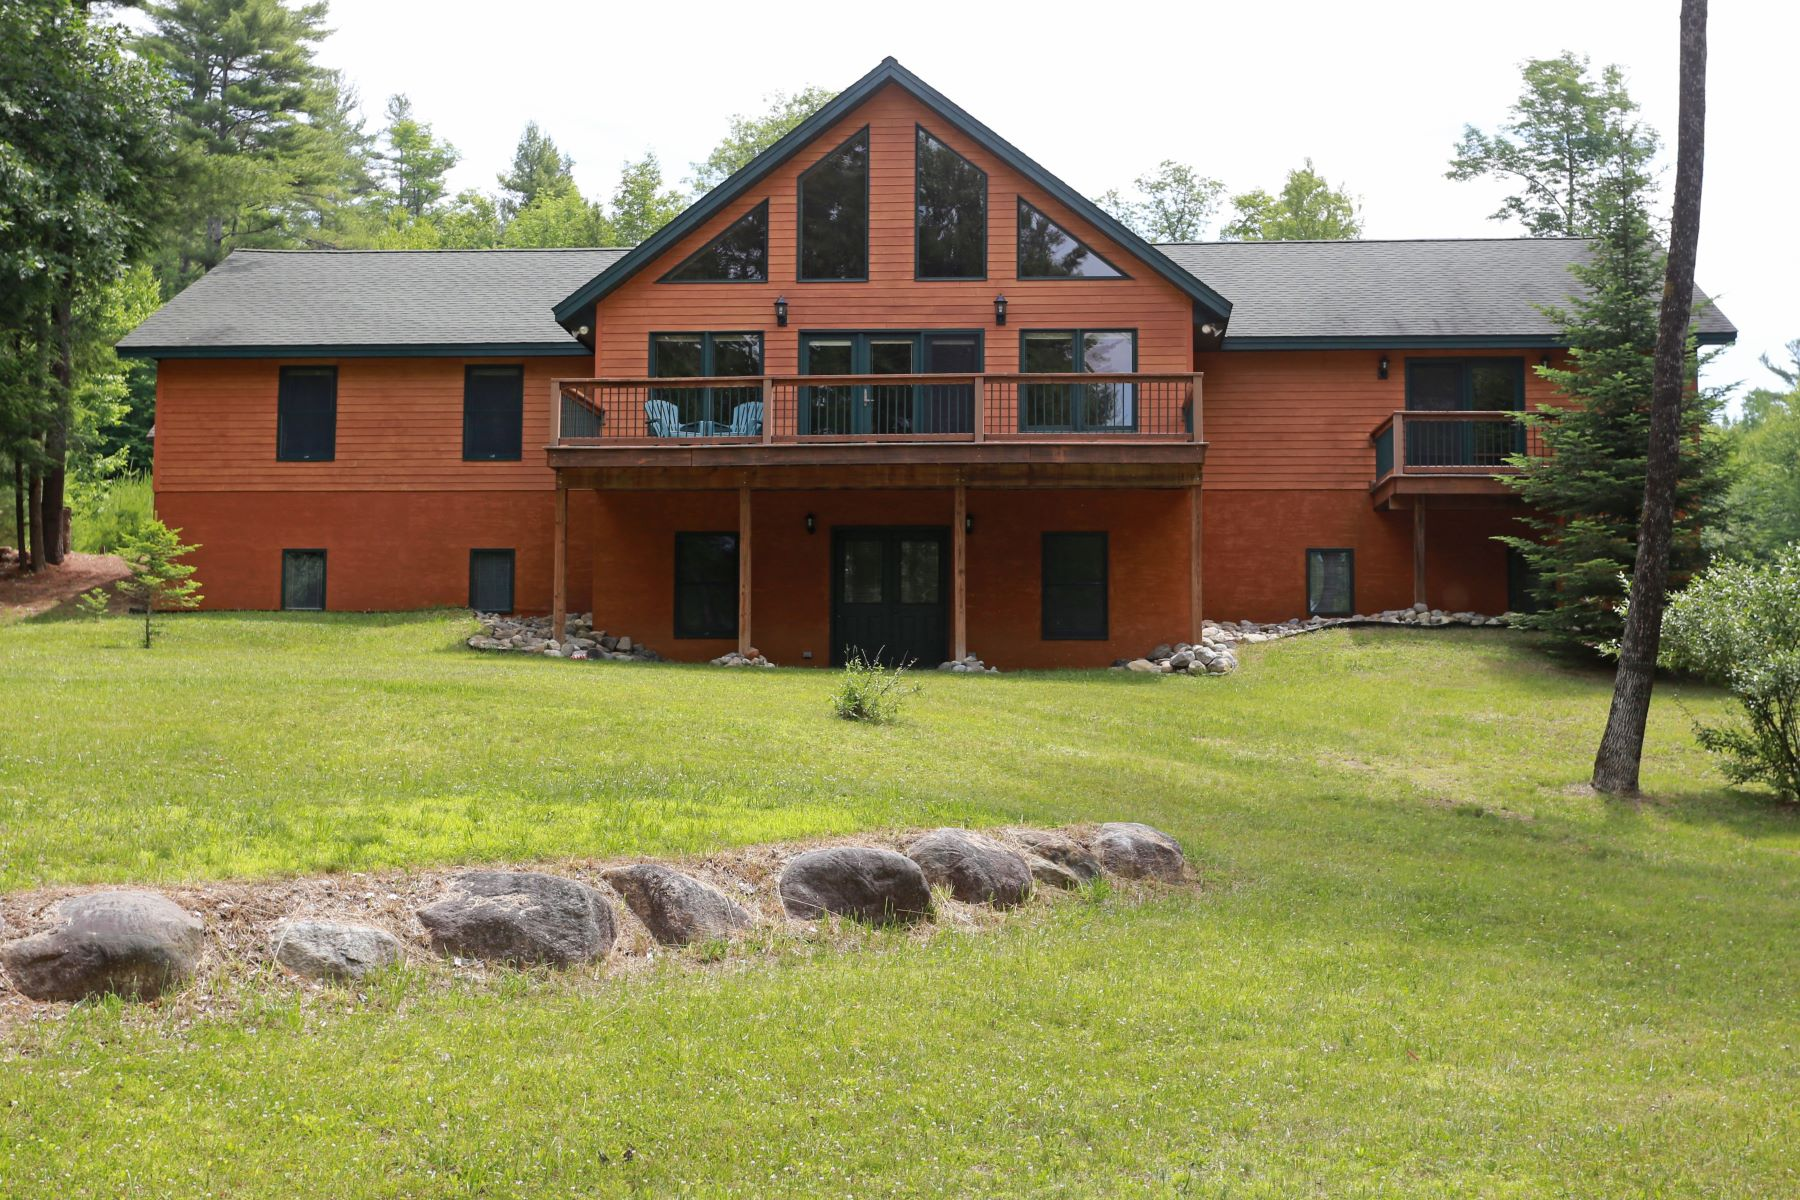 Property for Sale at Executive Home on Loon Lake 67 Blythewood Island Road Chestertown, New York 12817 United States